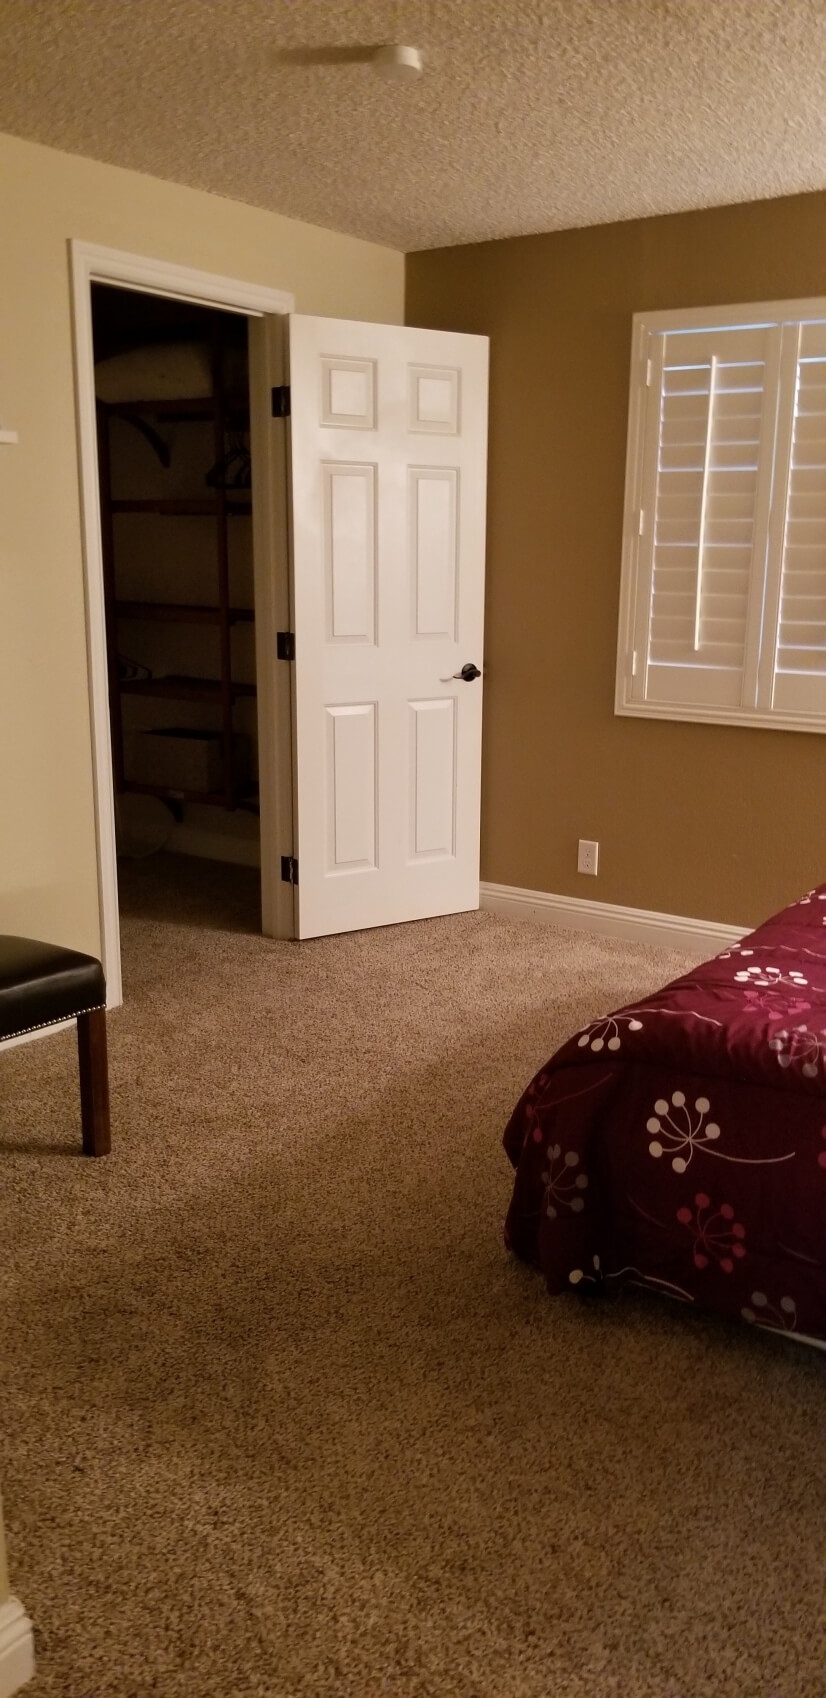 Bedroom 4 with large walk-in closet